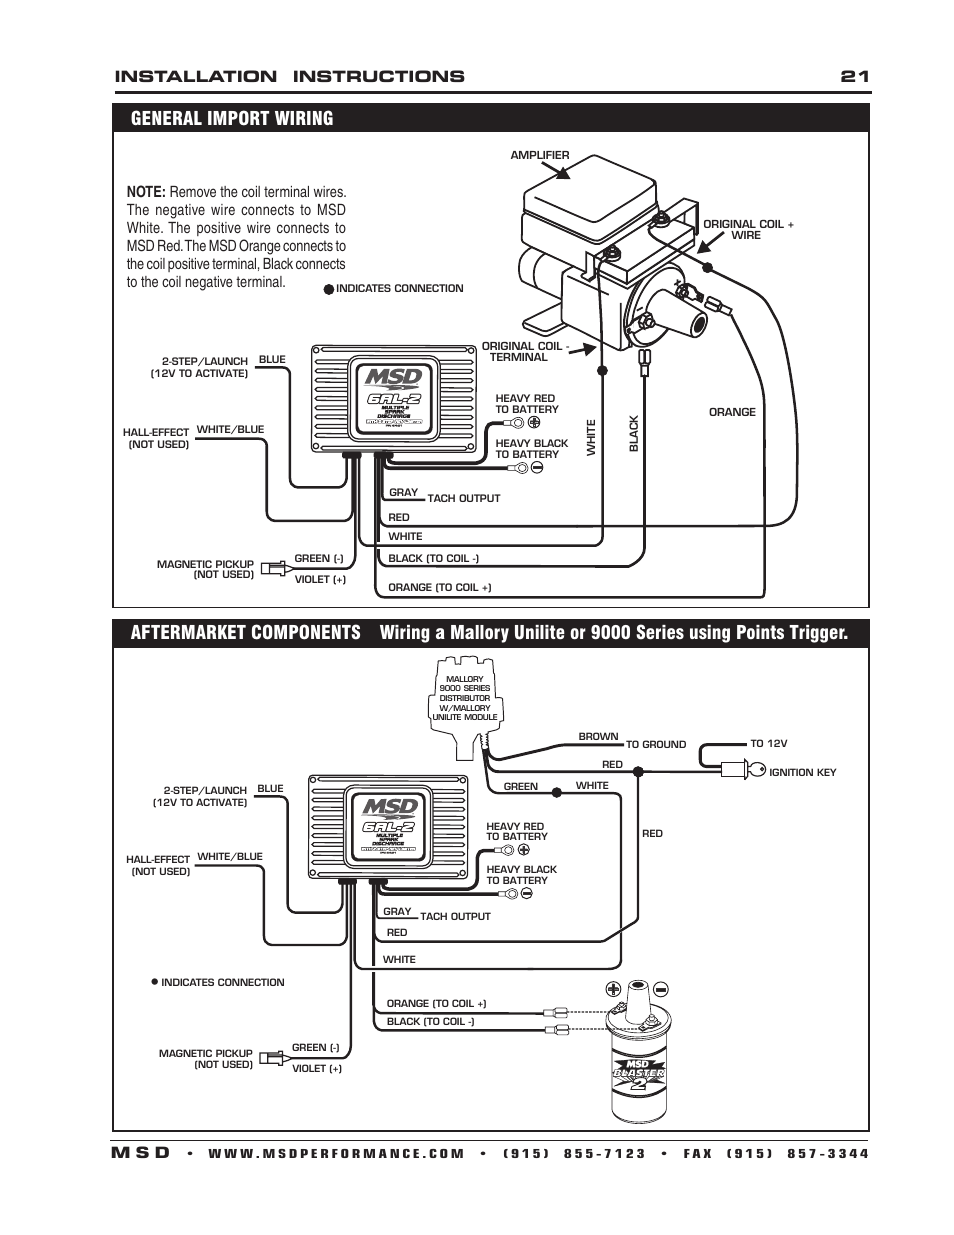 msd 6421 6al 2 ignition control installation page21?resize\\\\\\\=665%2C861 mallory unilite wiring diagram & how do i wire my mallory mallory 6al wiring diagram at edmiracle.co